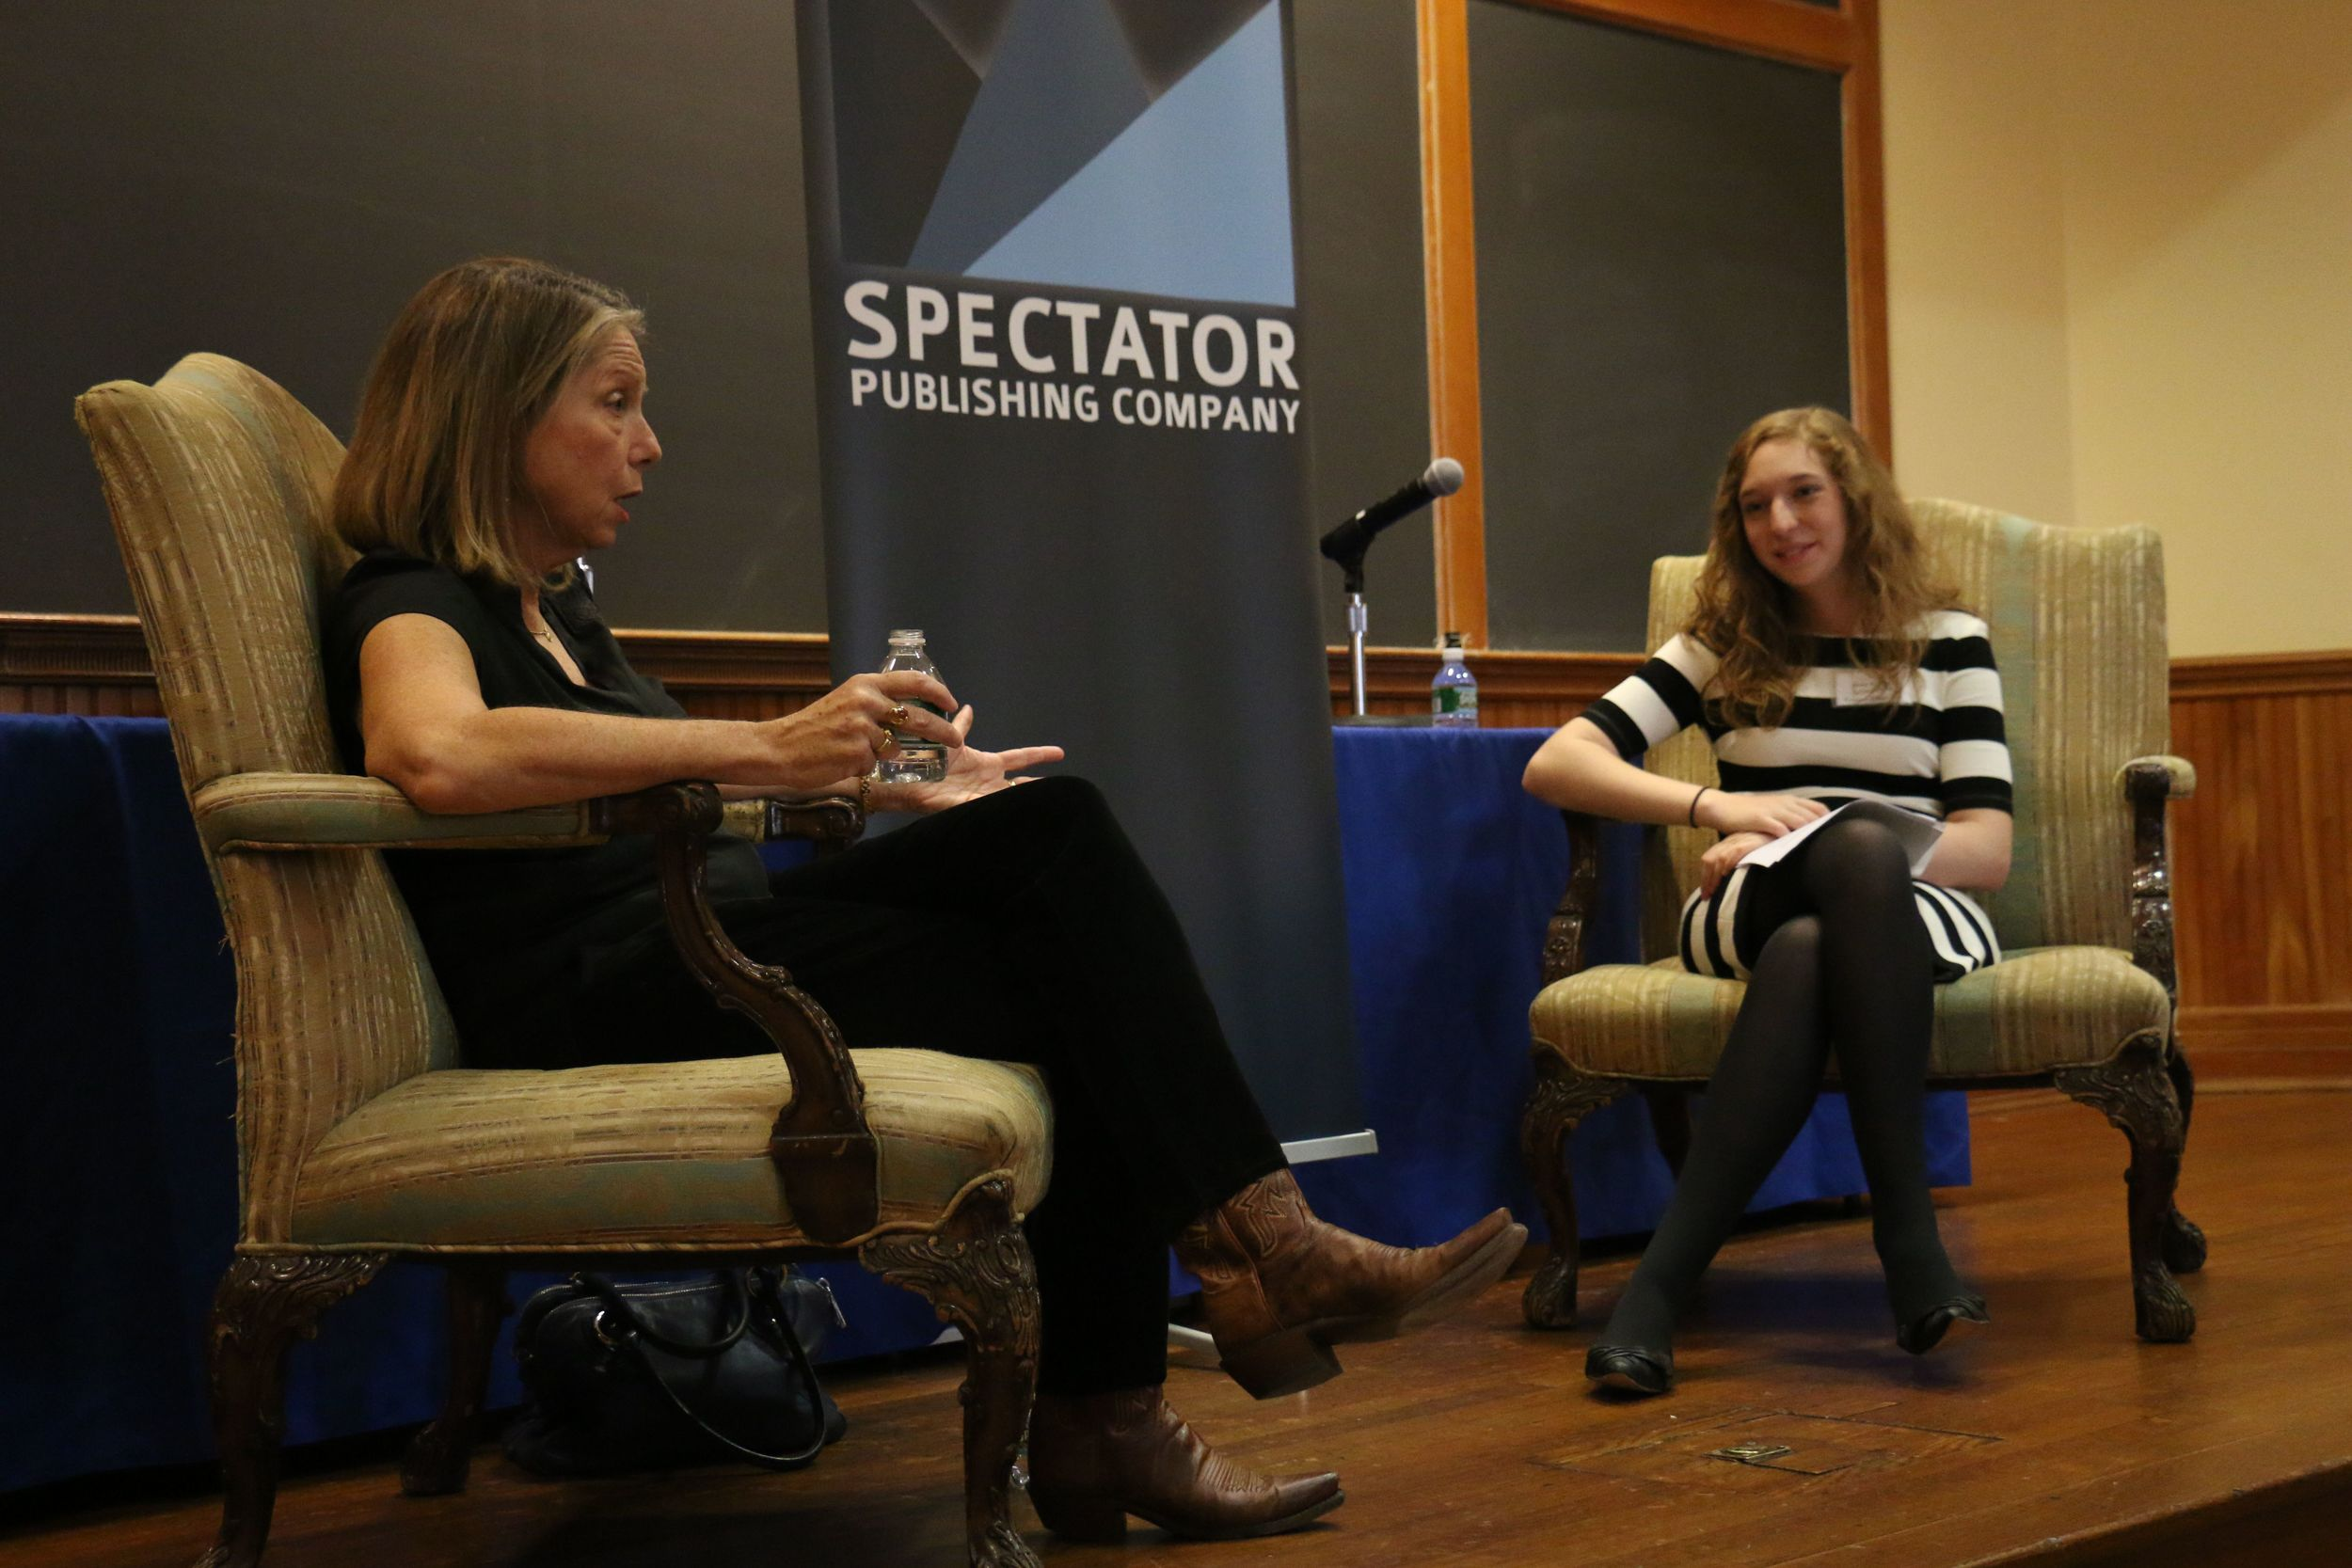 Jill Abramson, the former executive editor of the New York Times, shares her insight at the Columbia Media Conference in November 2014.